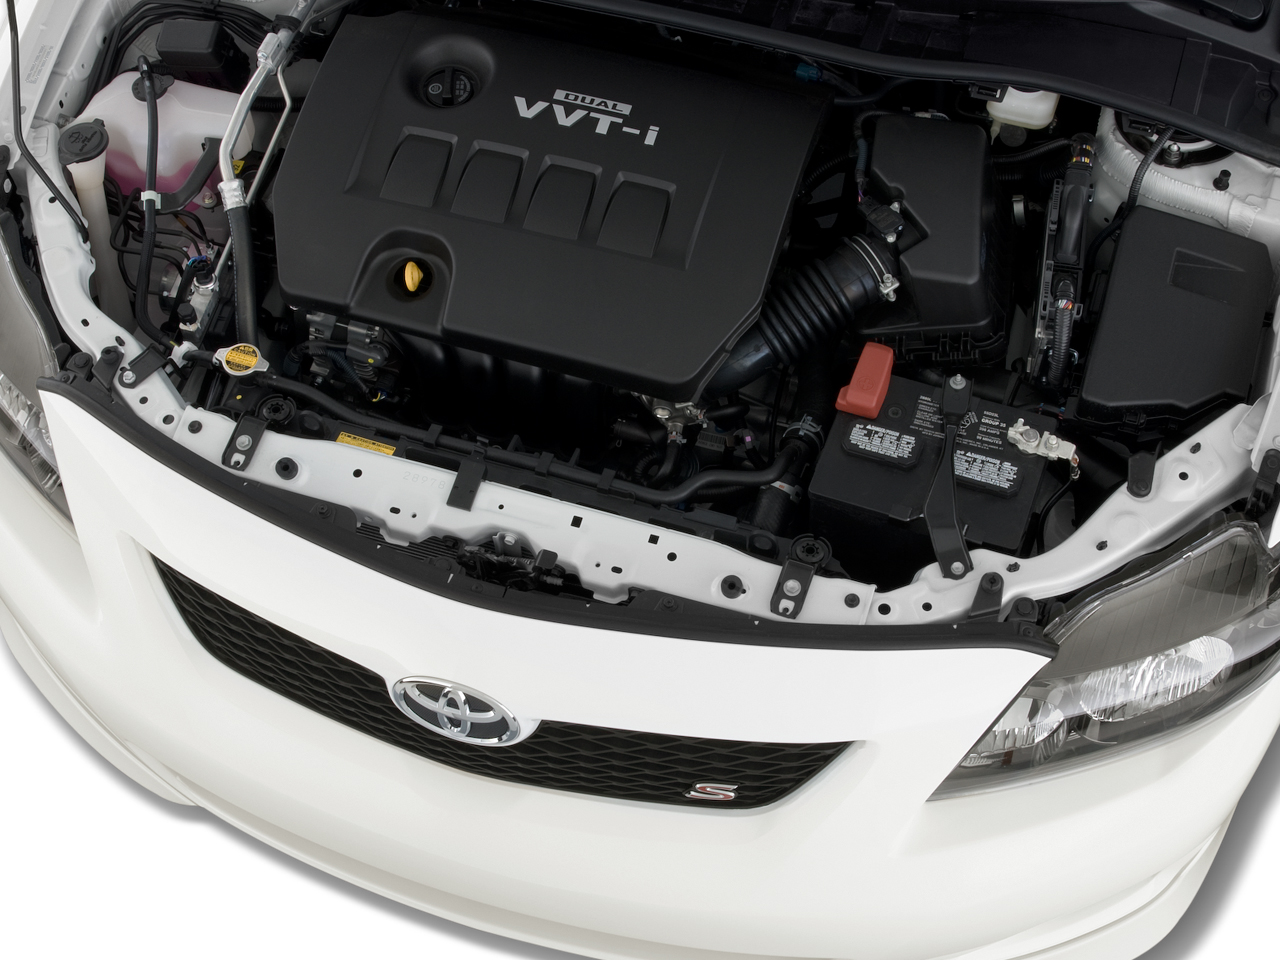 Monitoring The Fluids In Your Car